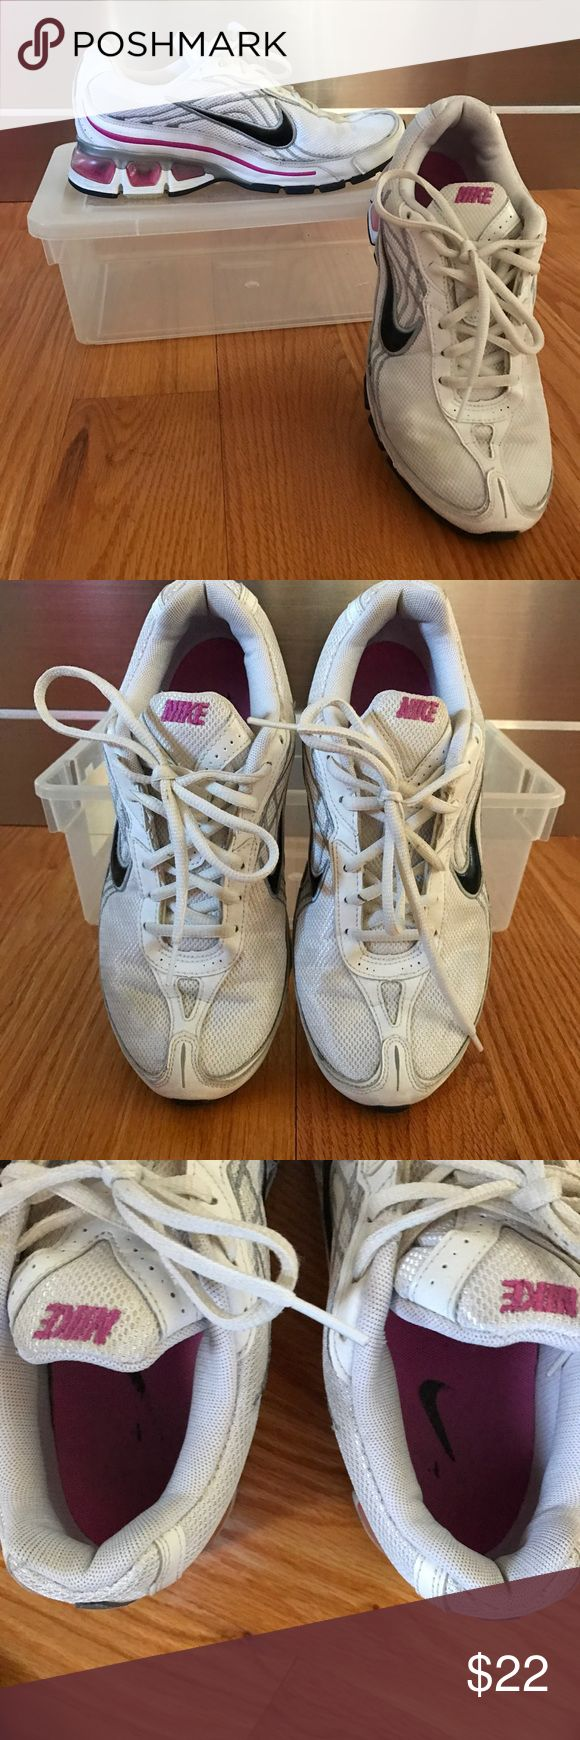 Nike Air Max Sneakers Used but in very good shape.Nike Air Max  Sneakers, white with black, pink & gray accents, gel bottom, size 8. Nike Shoes Sneakers